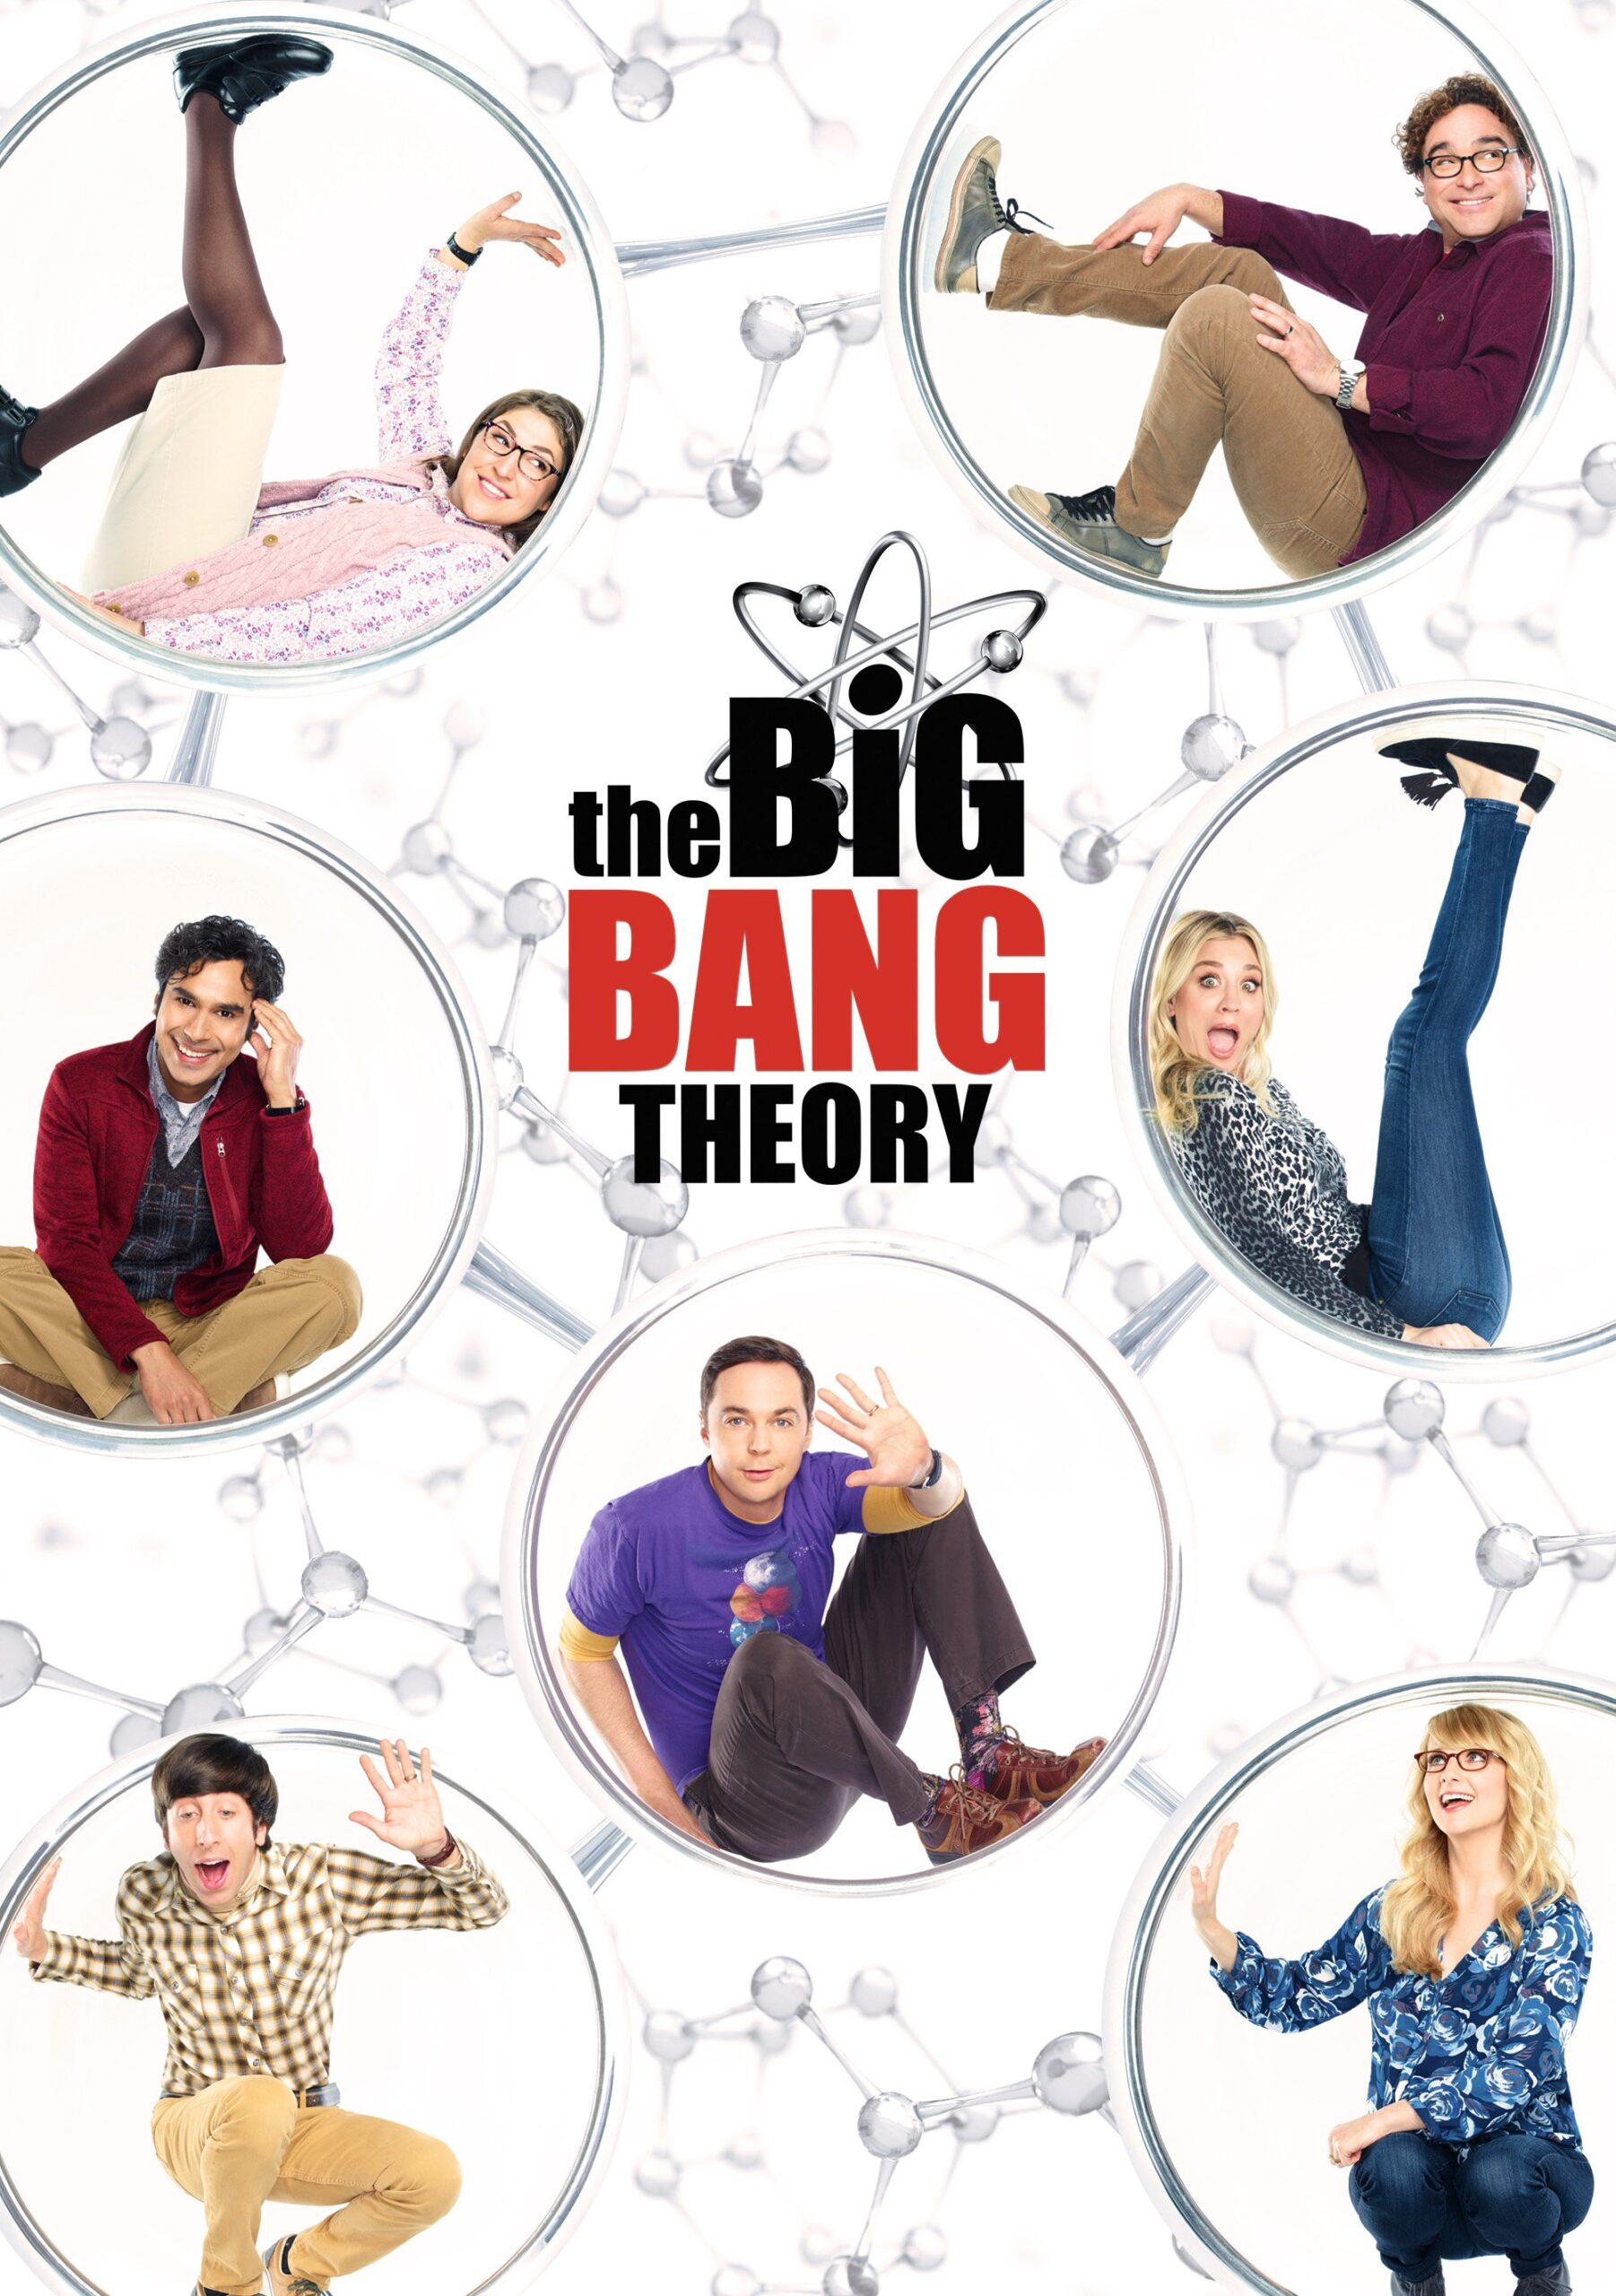 The Big Bang Theory Complete Series Available to Own Now